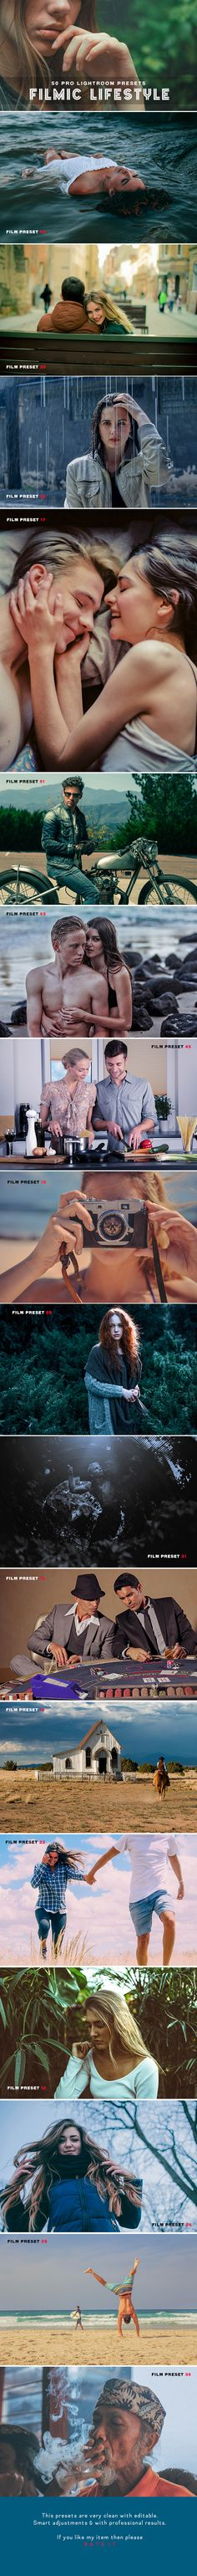 Buy 50 Filmic Lifestyle Lightroom Presets by h_s on GraphicRiver. 50 Filmic Lifestyle Lightroom Presets is the pack of professional Lightroom Presets perfect for new and old photograp. Photoshop Images, Photoshop Actions, Photoshop Presets, Adobe Photoshop, Professional Lightroom Presets, Lightroom 4, Photo Hacks, Photo Tips, Bokeh